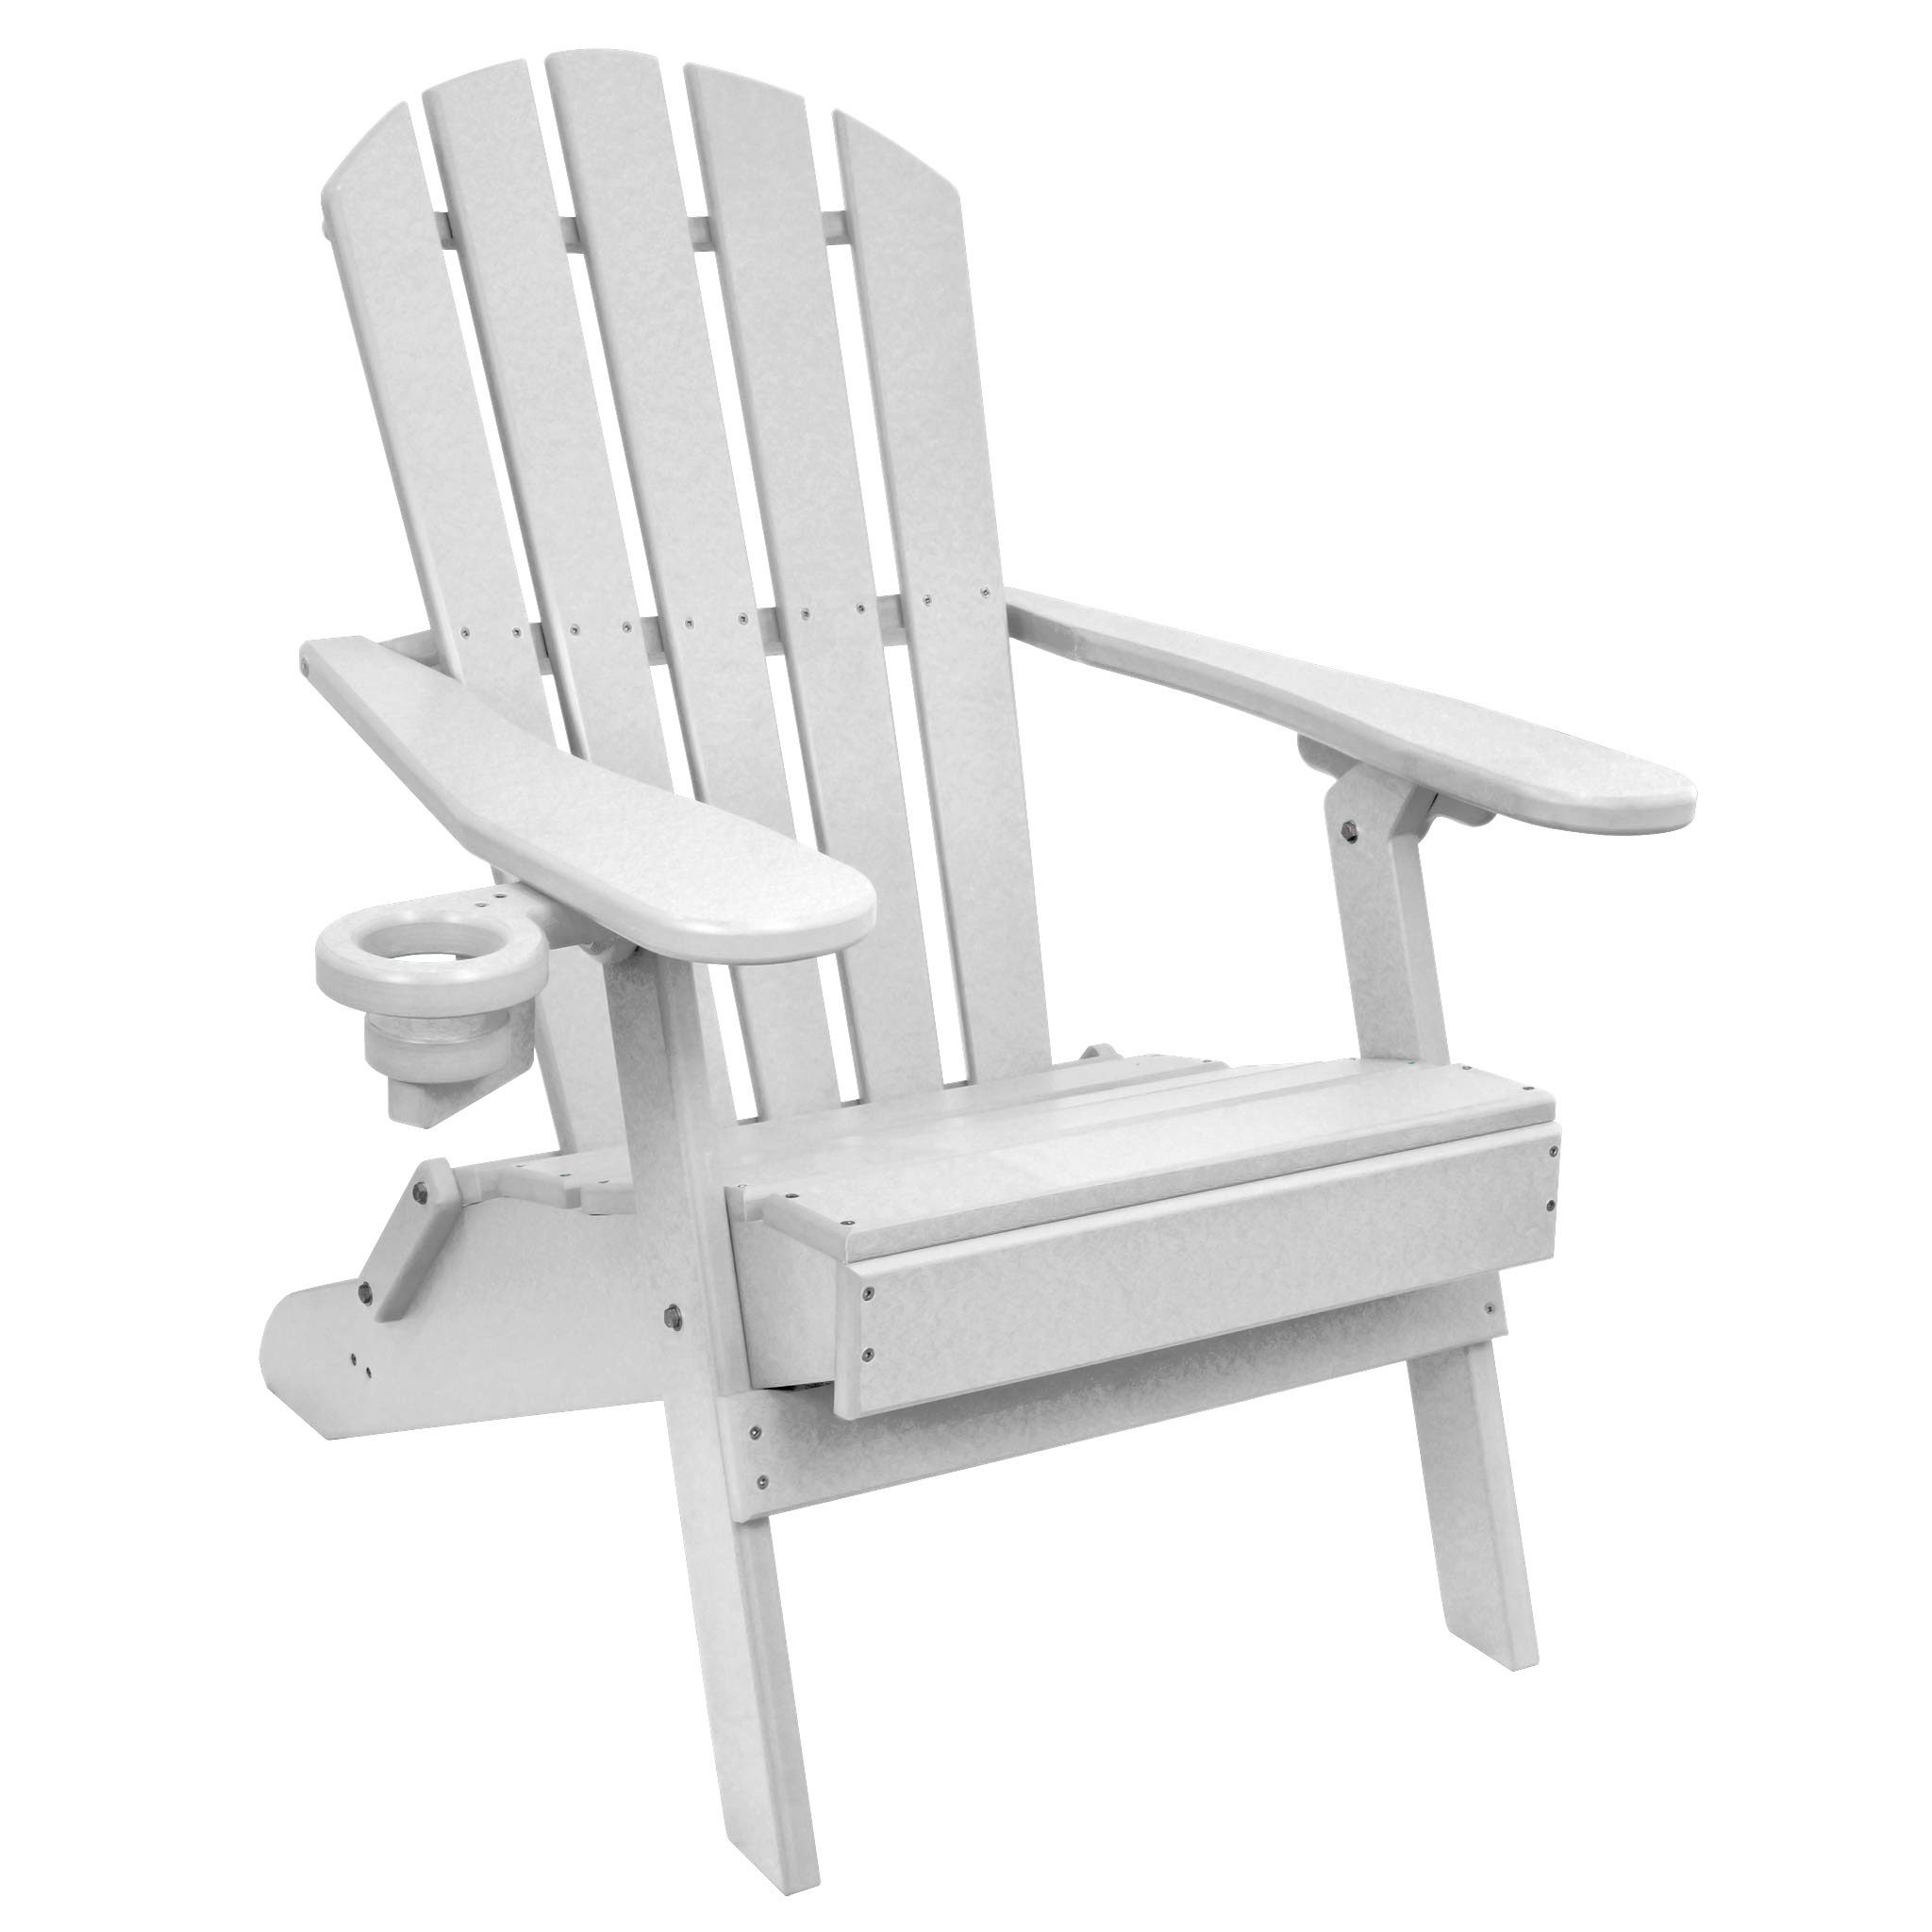 ECCB Outdoor Outer Banks Value Line Poly Lumber Adirondack Chair (White)